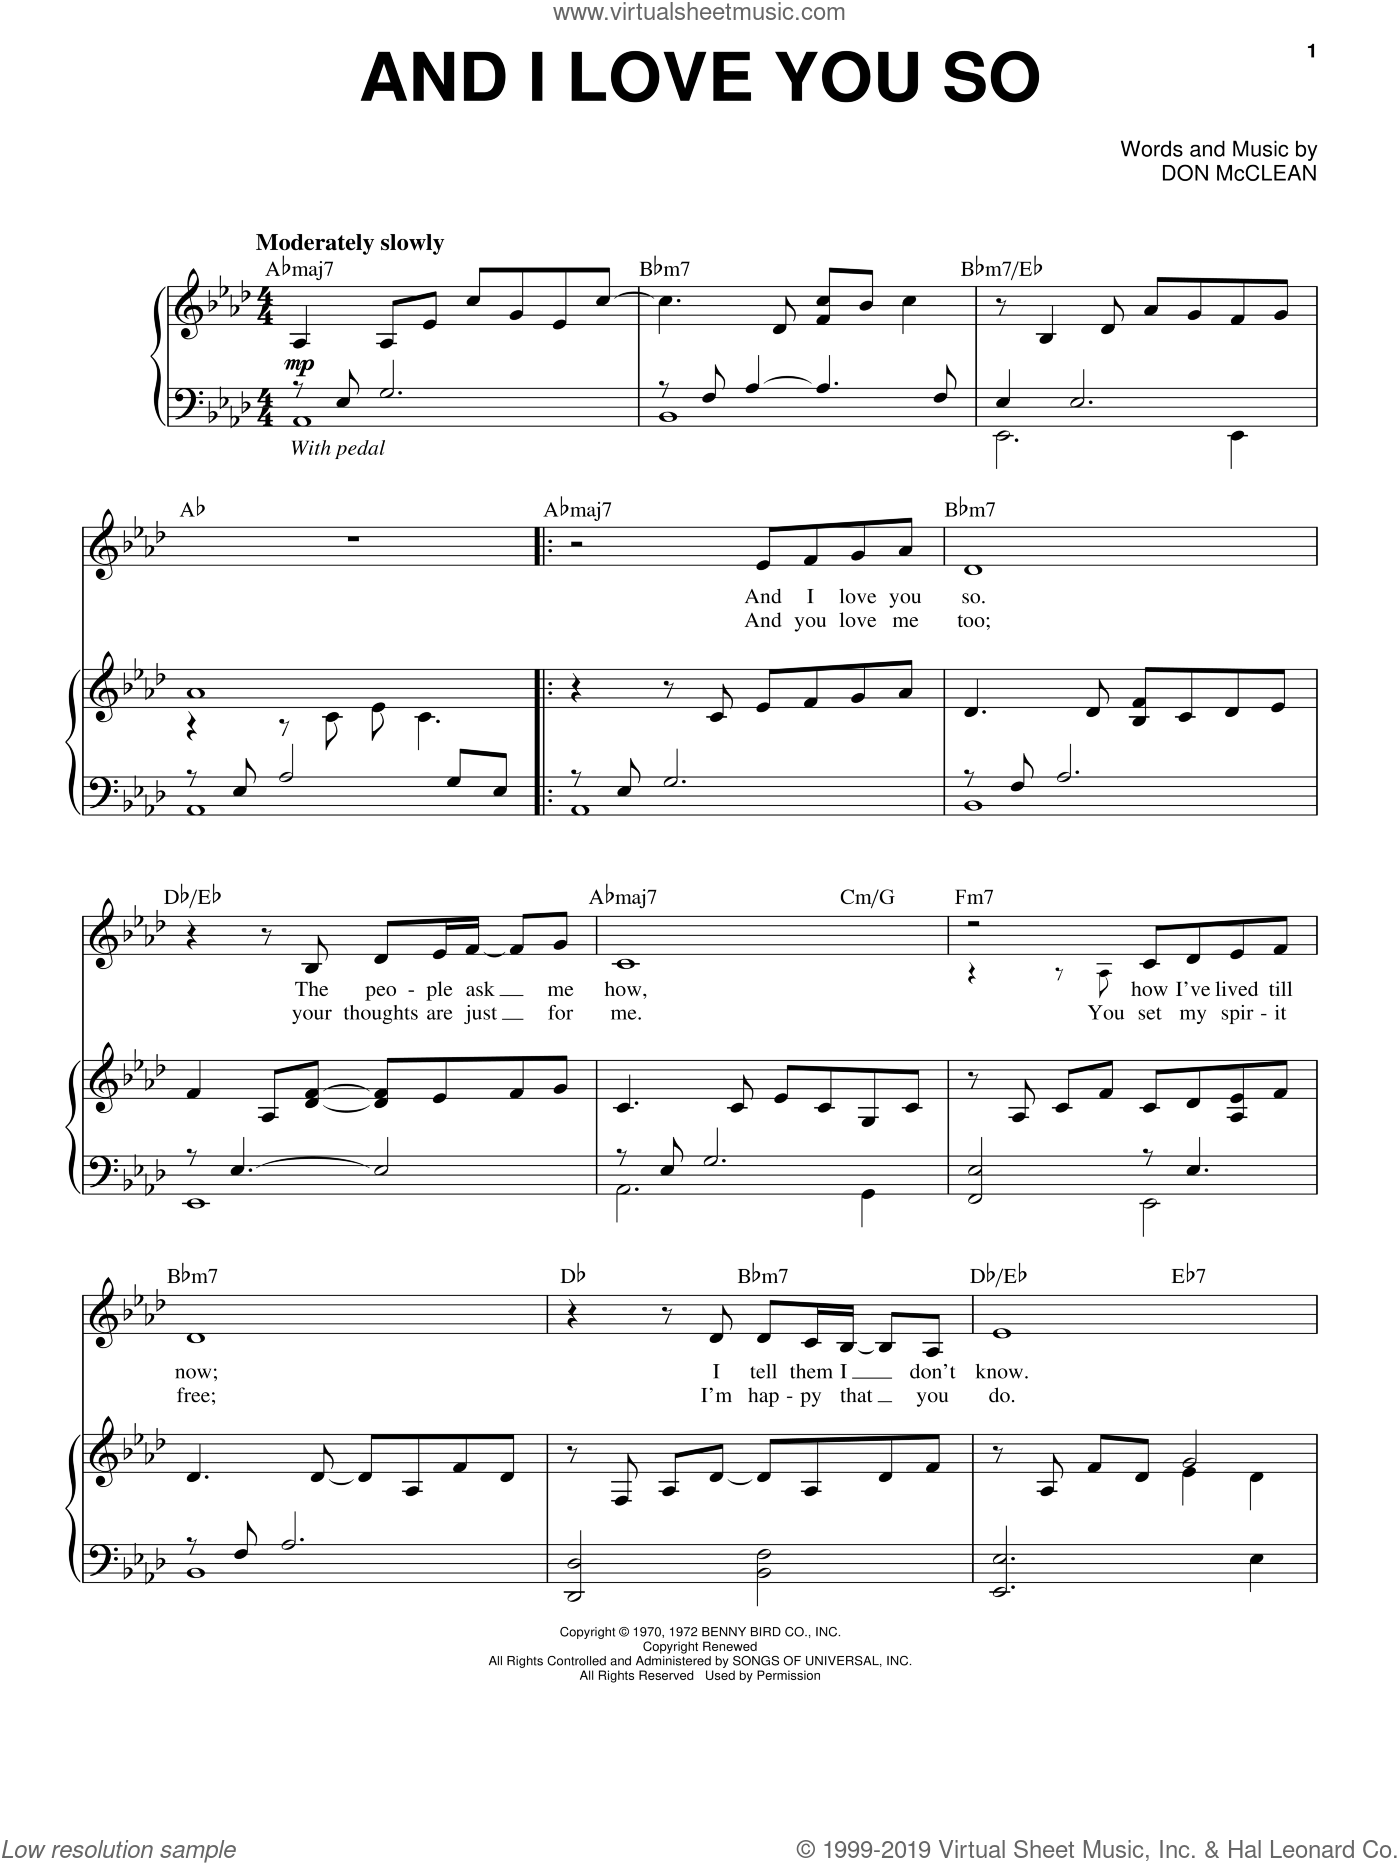 And I Love You So sheet music for voice and piano by Don McLean